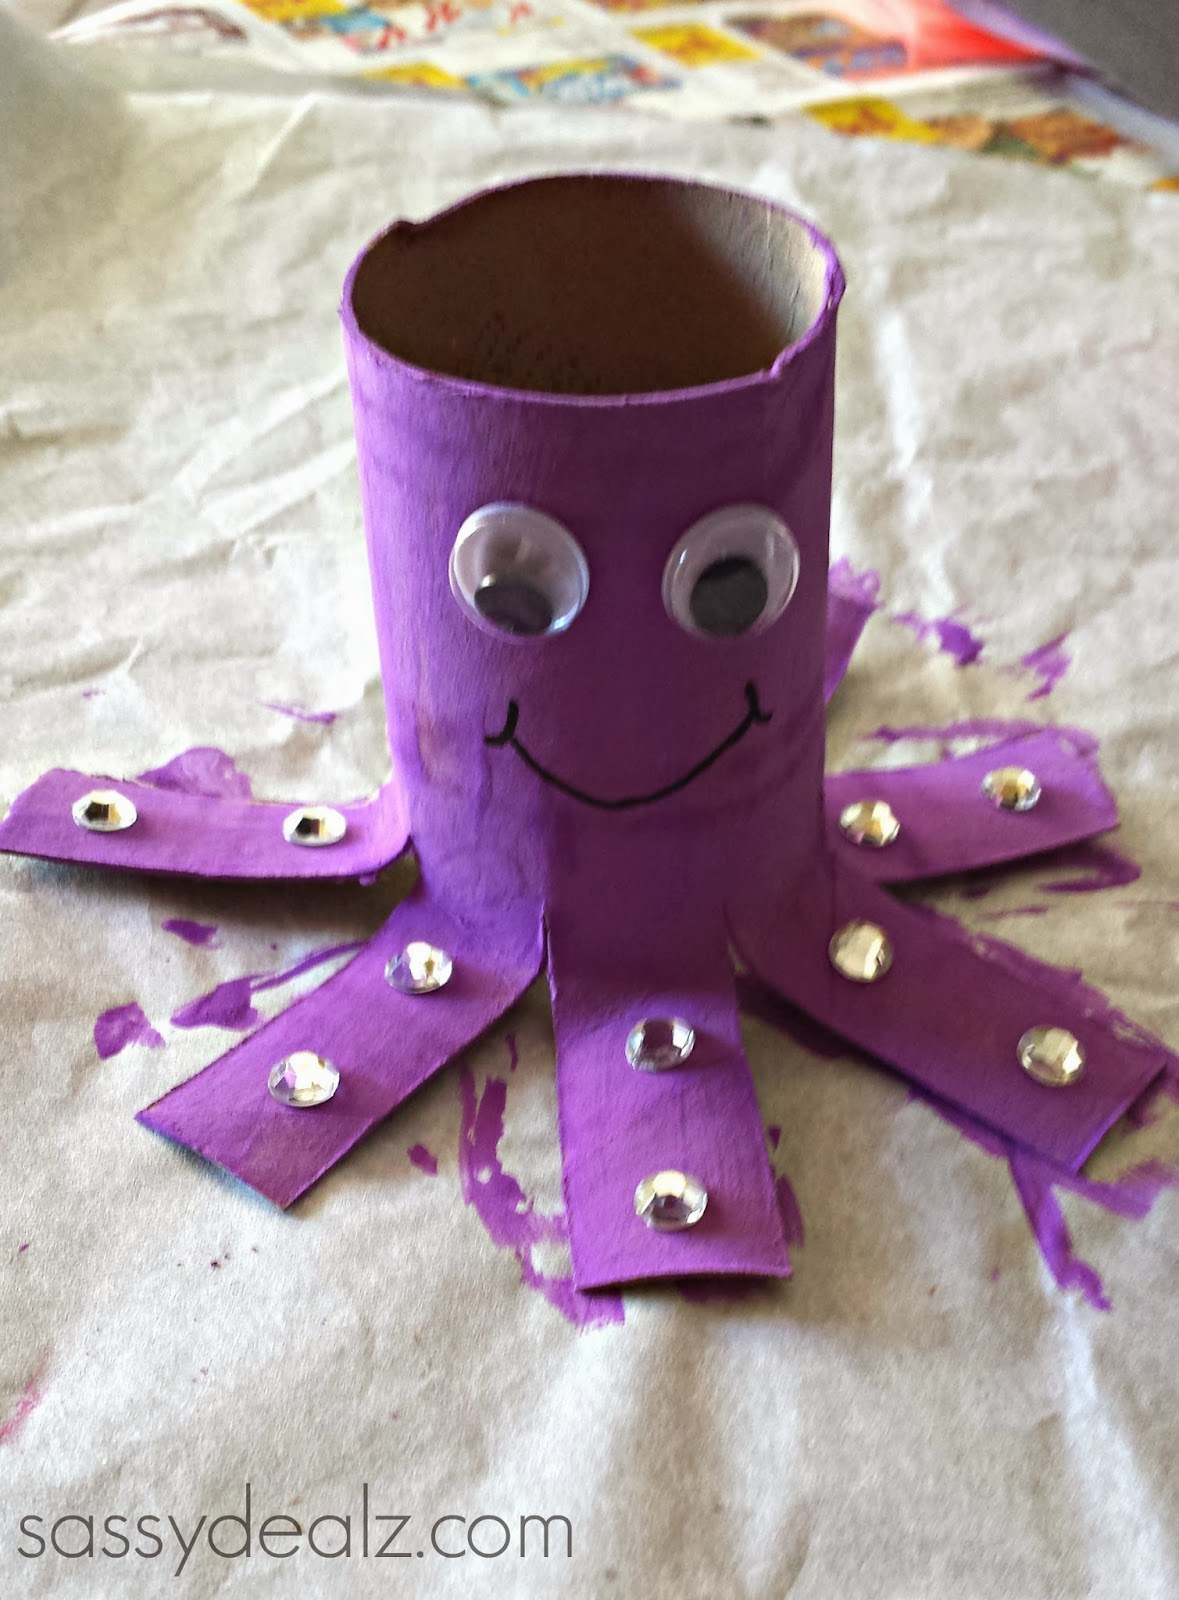 octopus-toilet-paper-roll-crafts